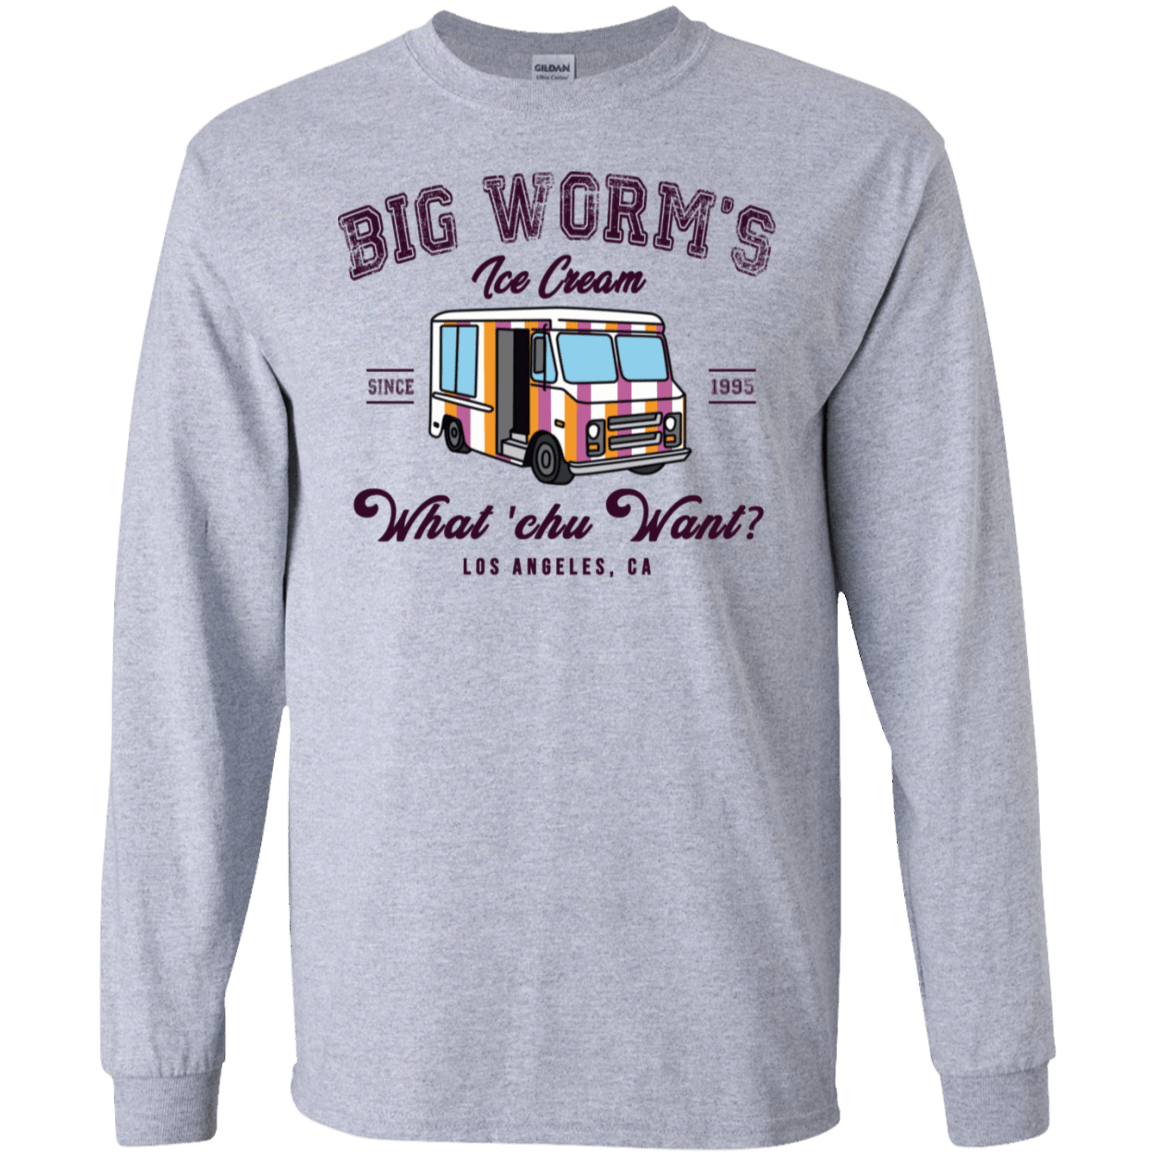 Big Worm's Ice Cream What 'chu Want 30-188-73514262-335 - Tee Ript